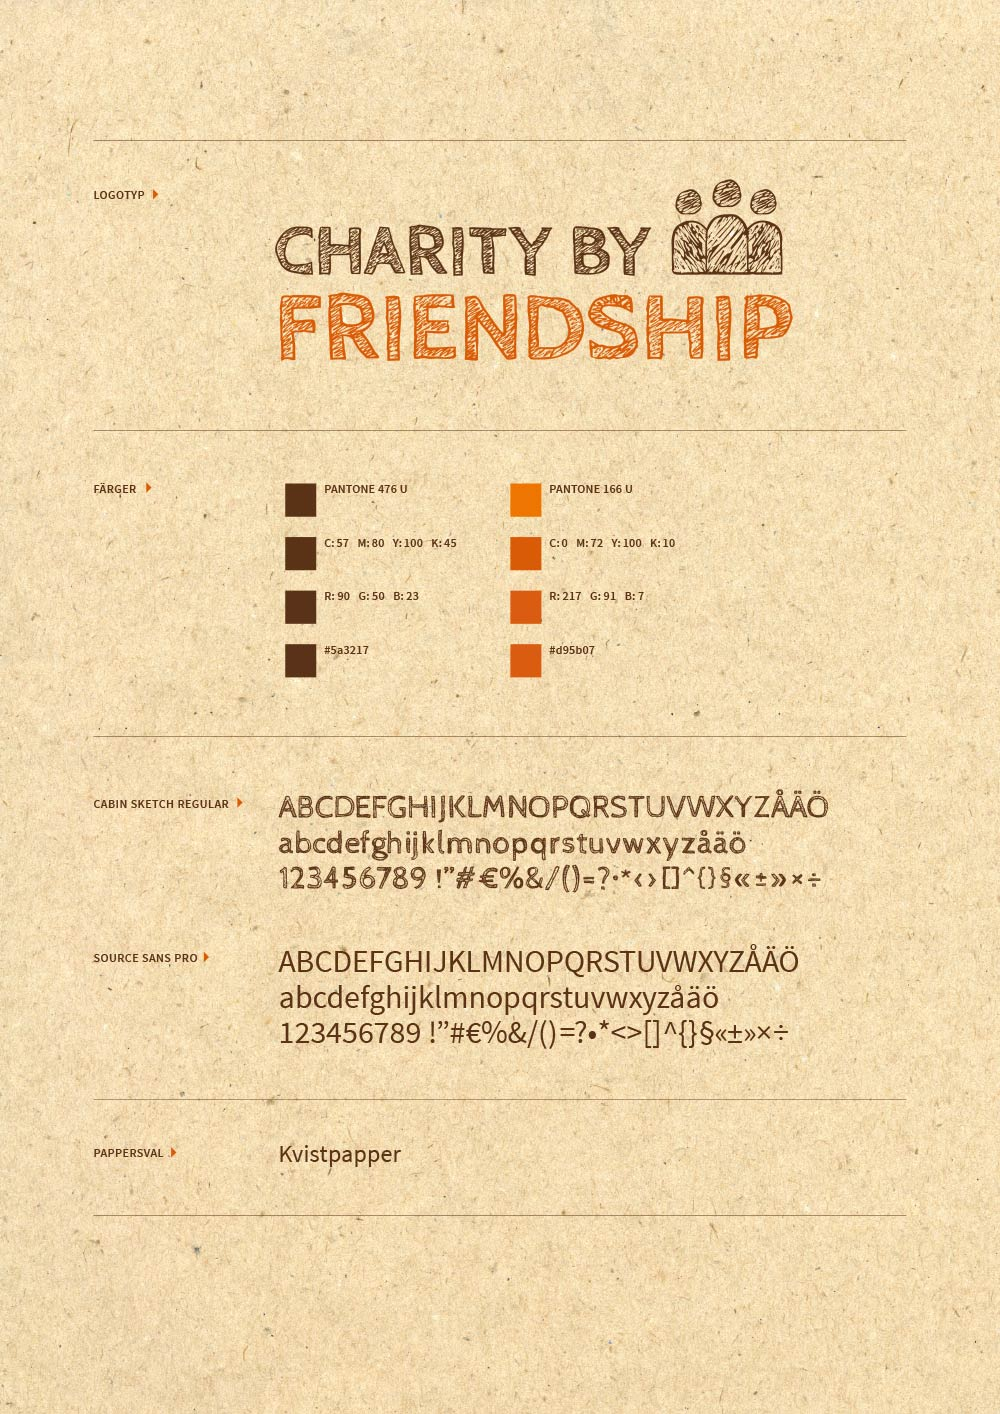 Charity by friendship grafisk profil